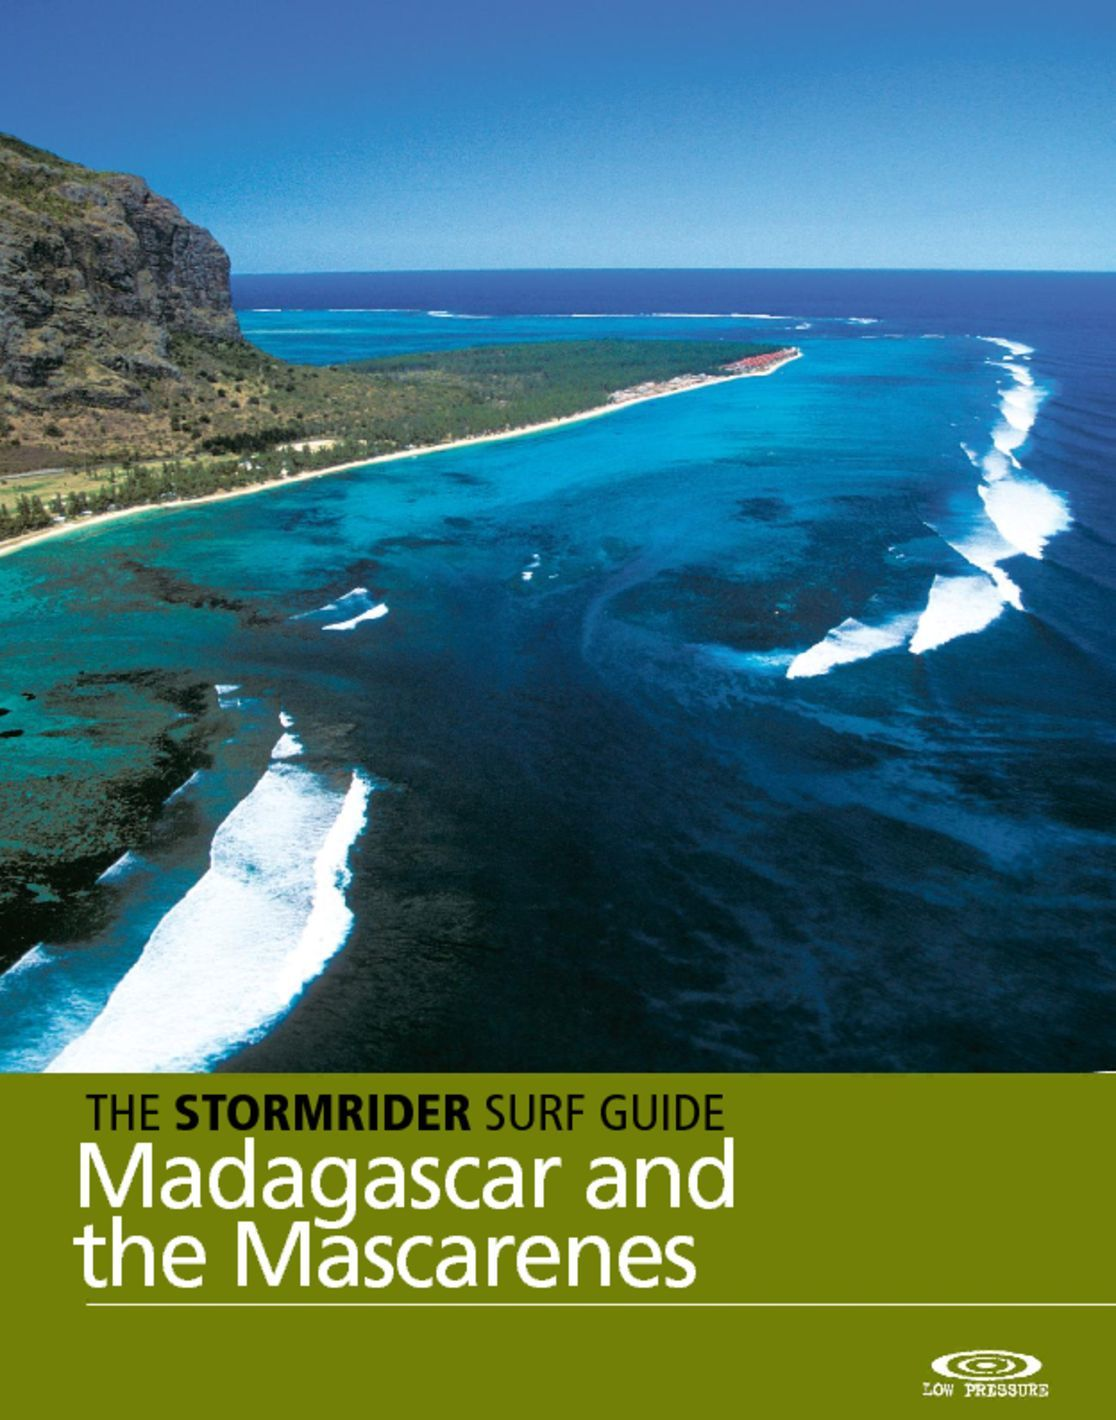 The Stormrider Surf Guide Madagascar and the Mascarenes Digital